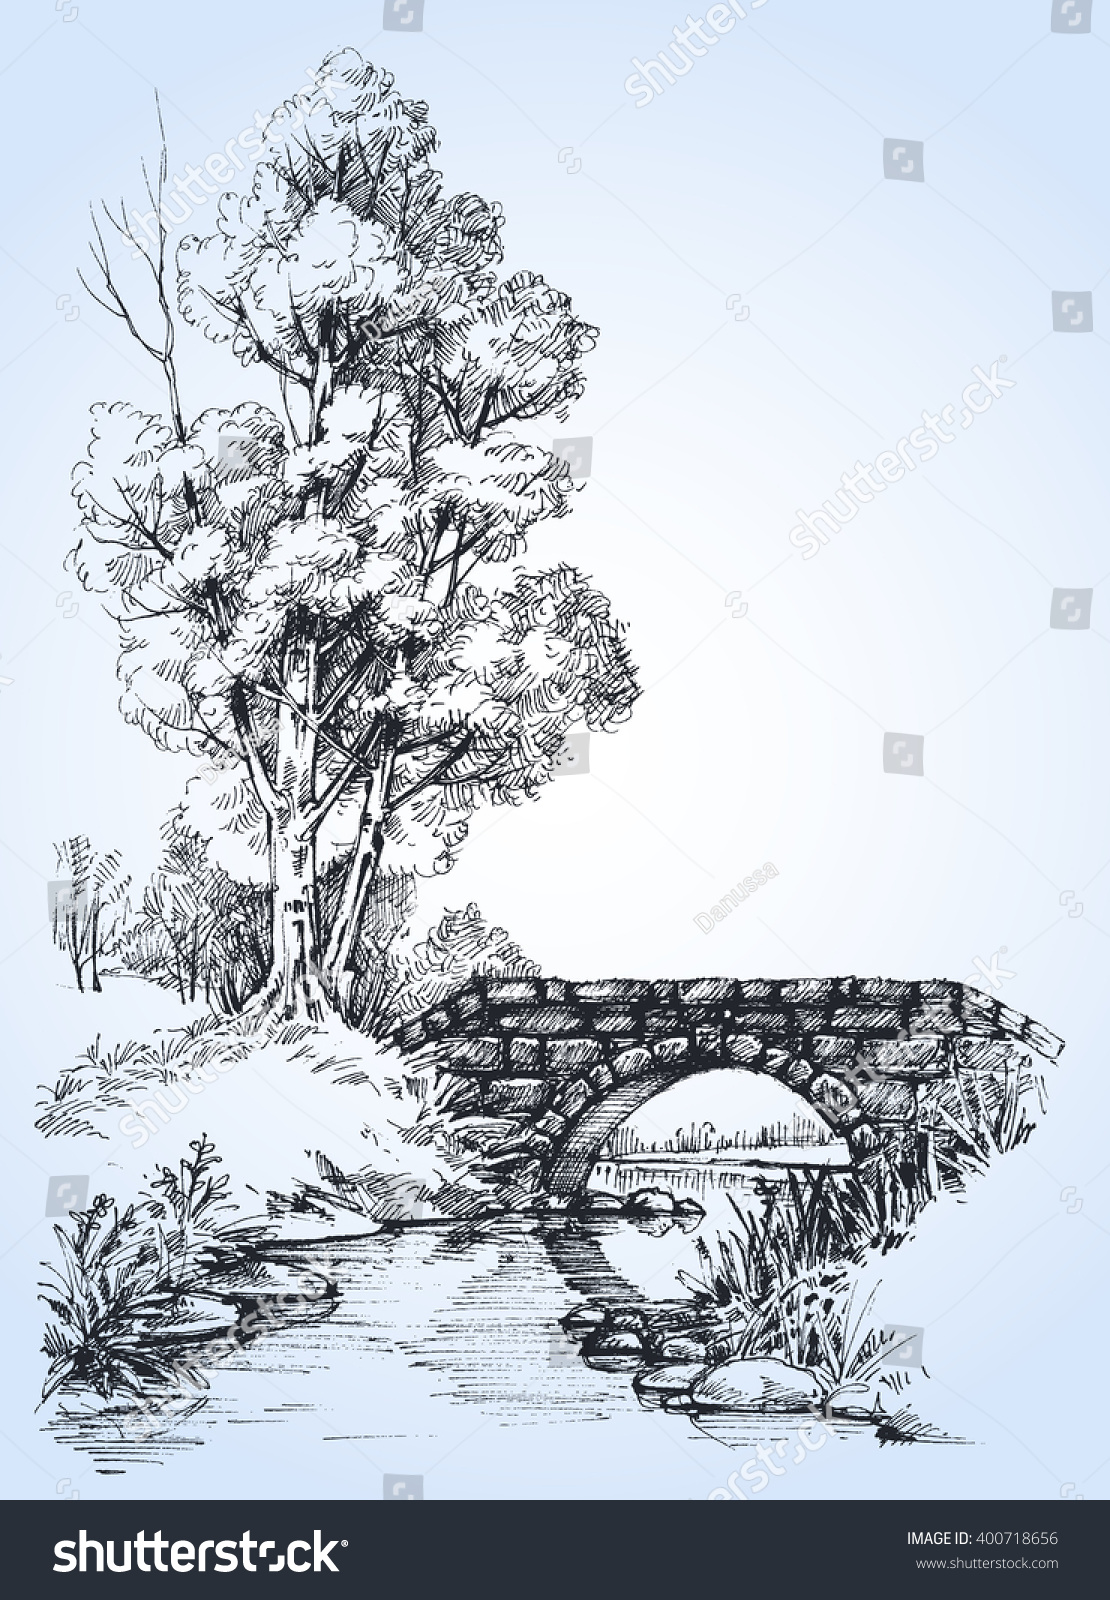 Line Drawing River : Park sketch a stone bridge over river in the forest stock